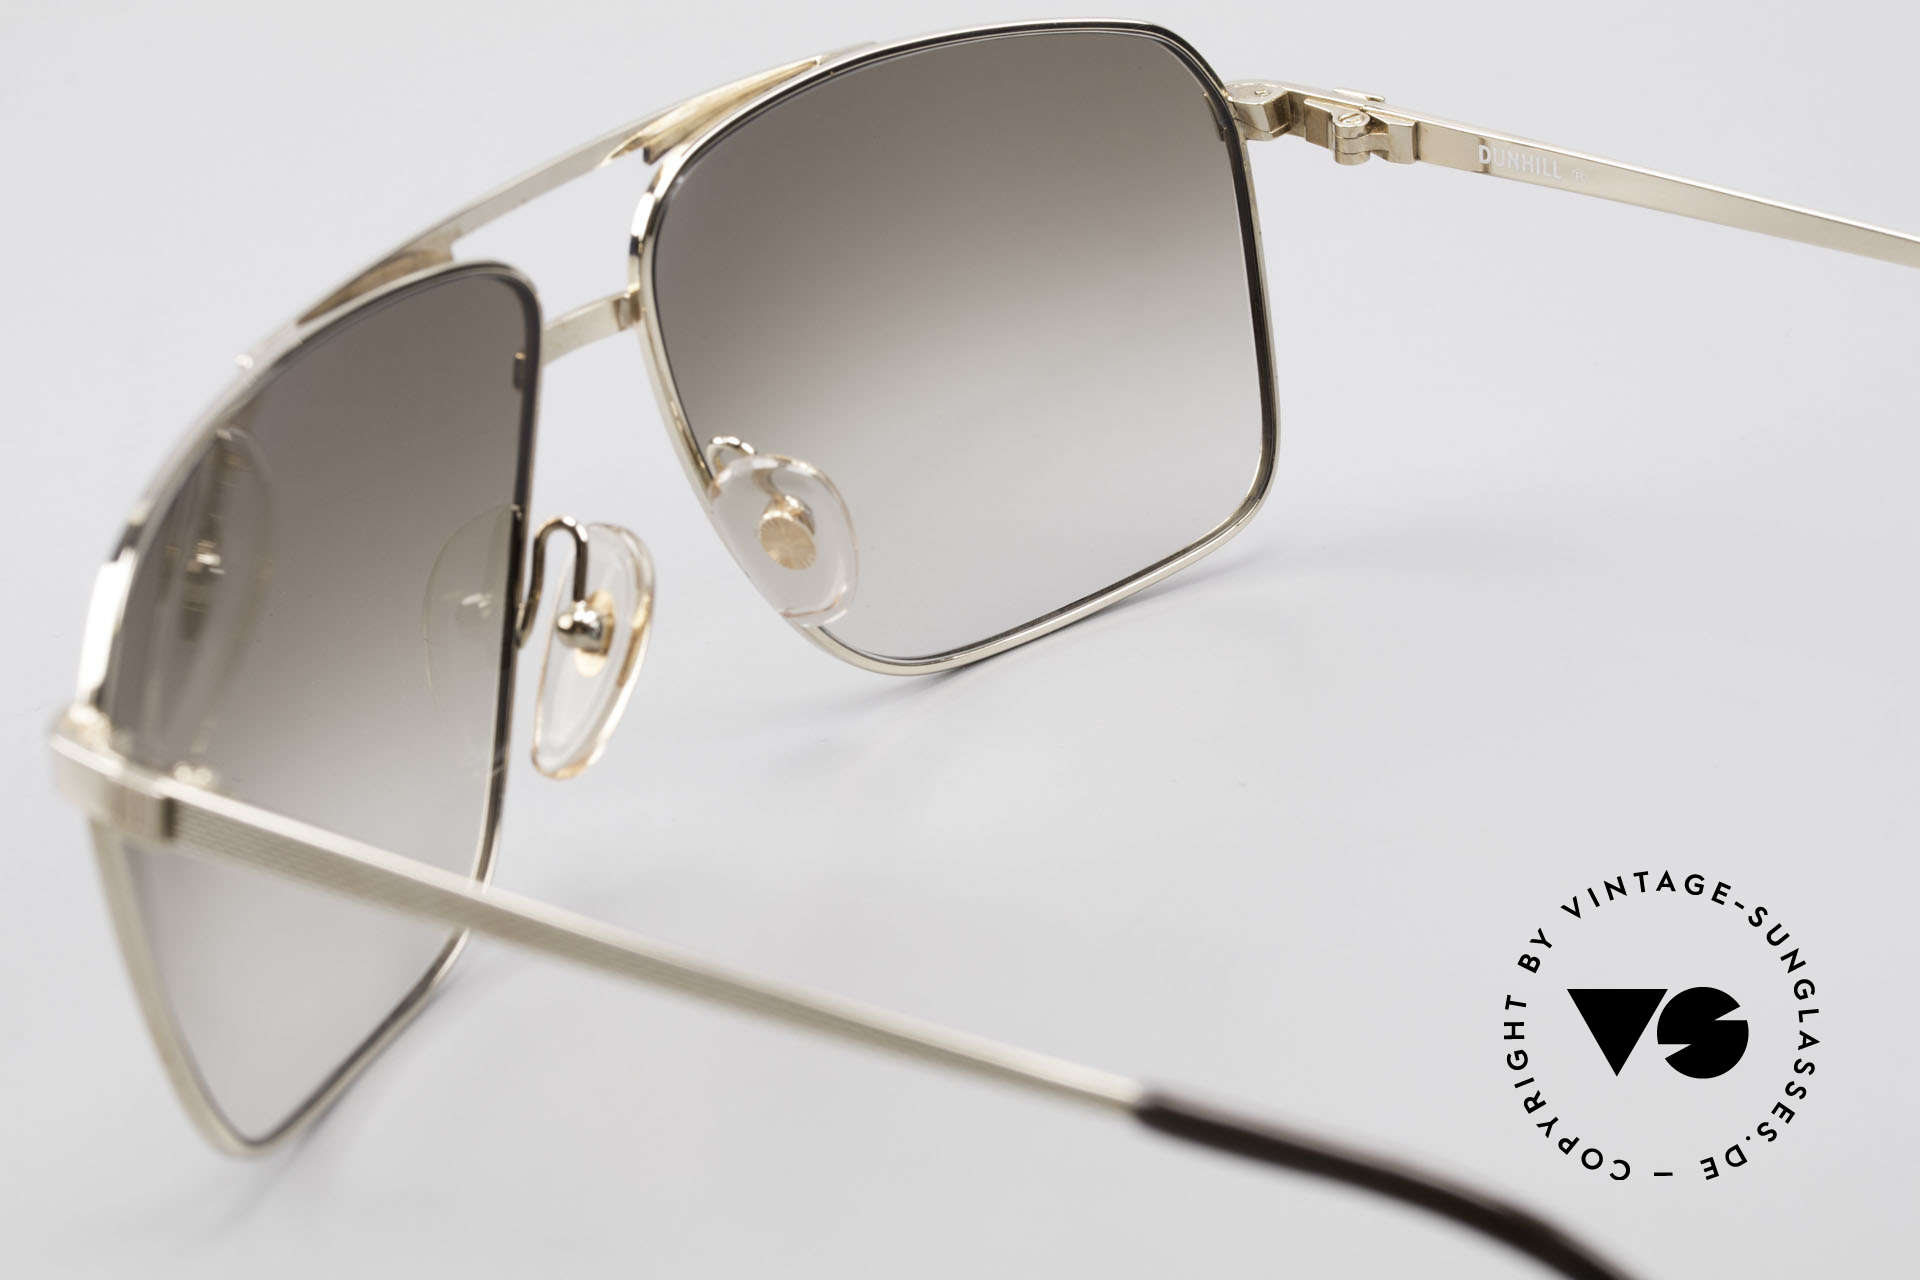 Dunhill 6126 Gold Plated 90's Sunglasses, NO RETRO frame, but a precious old original from 1990, Made for Men